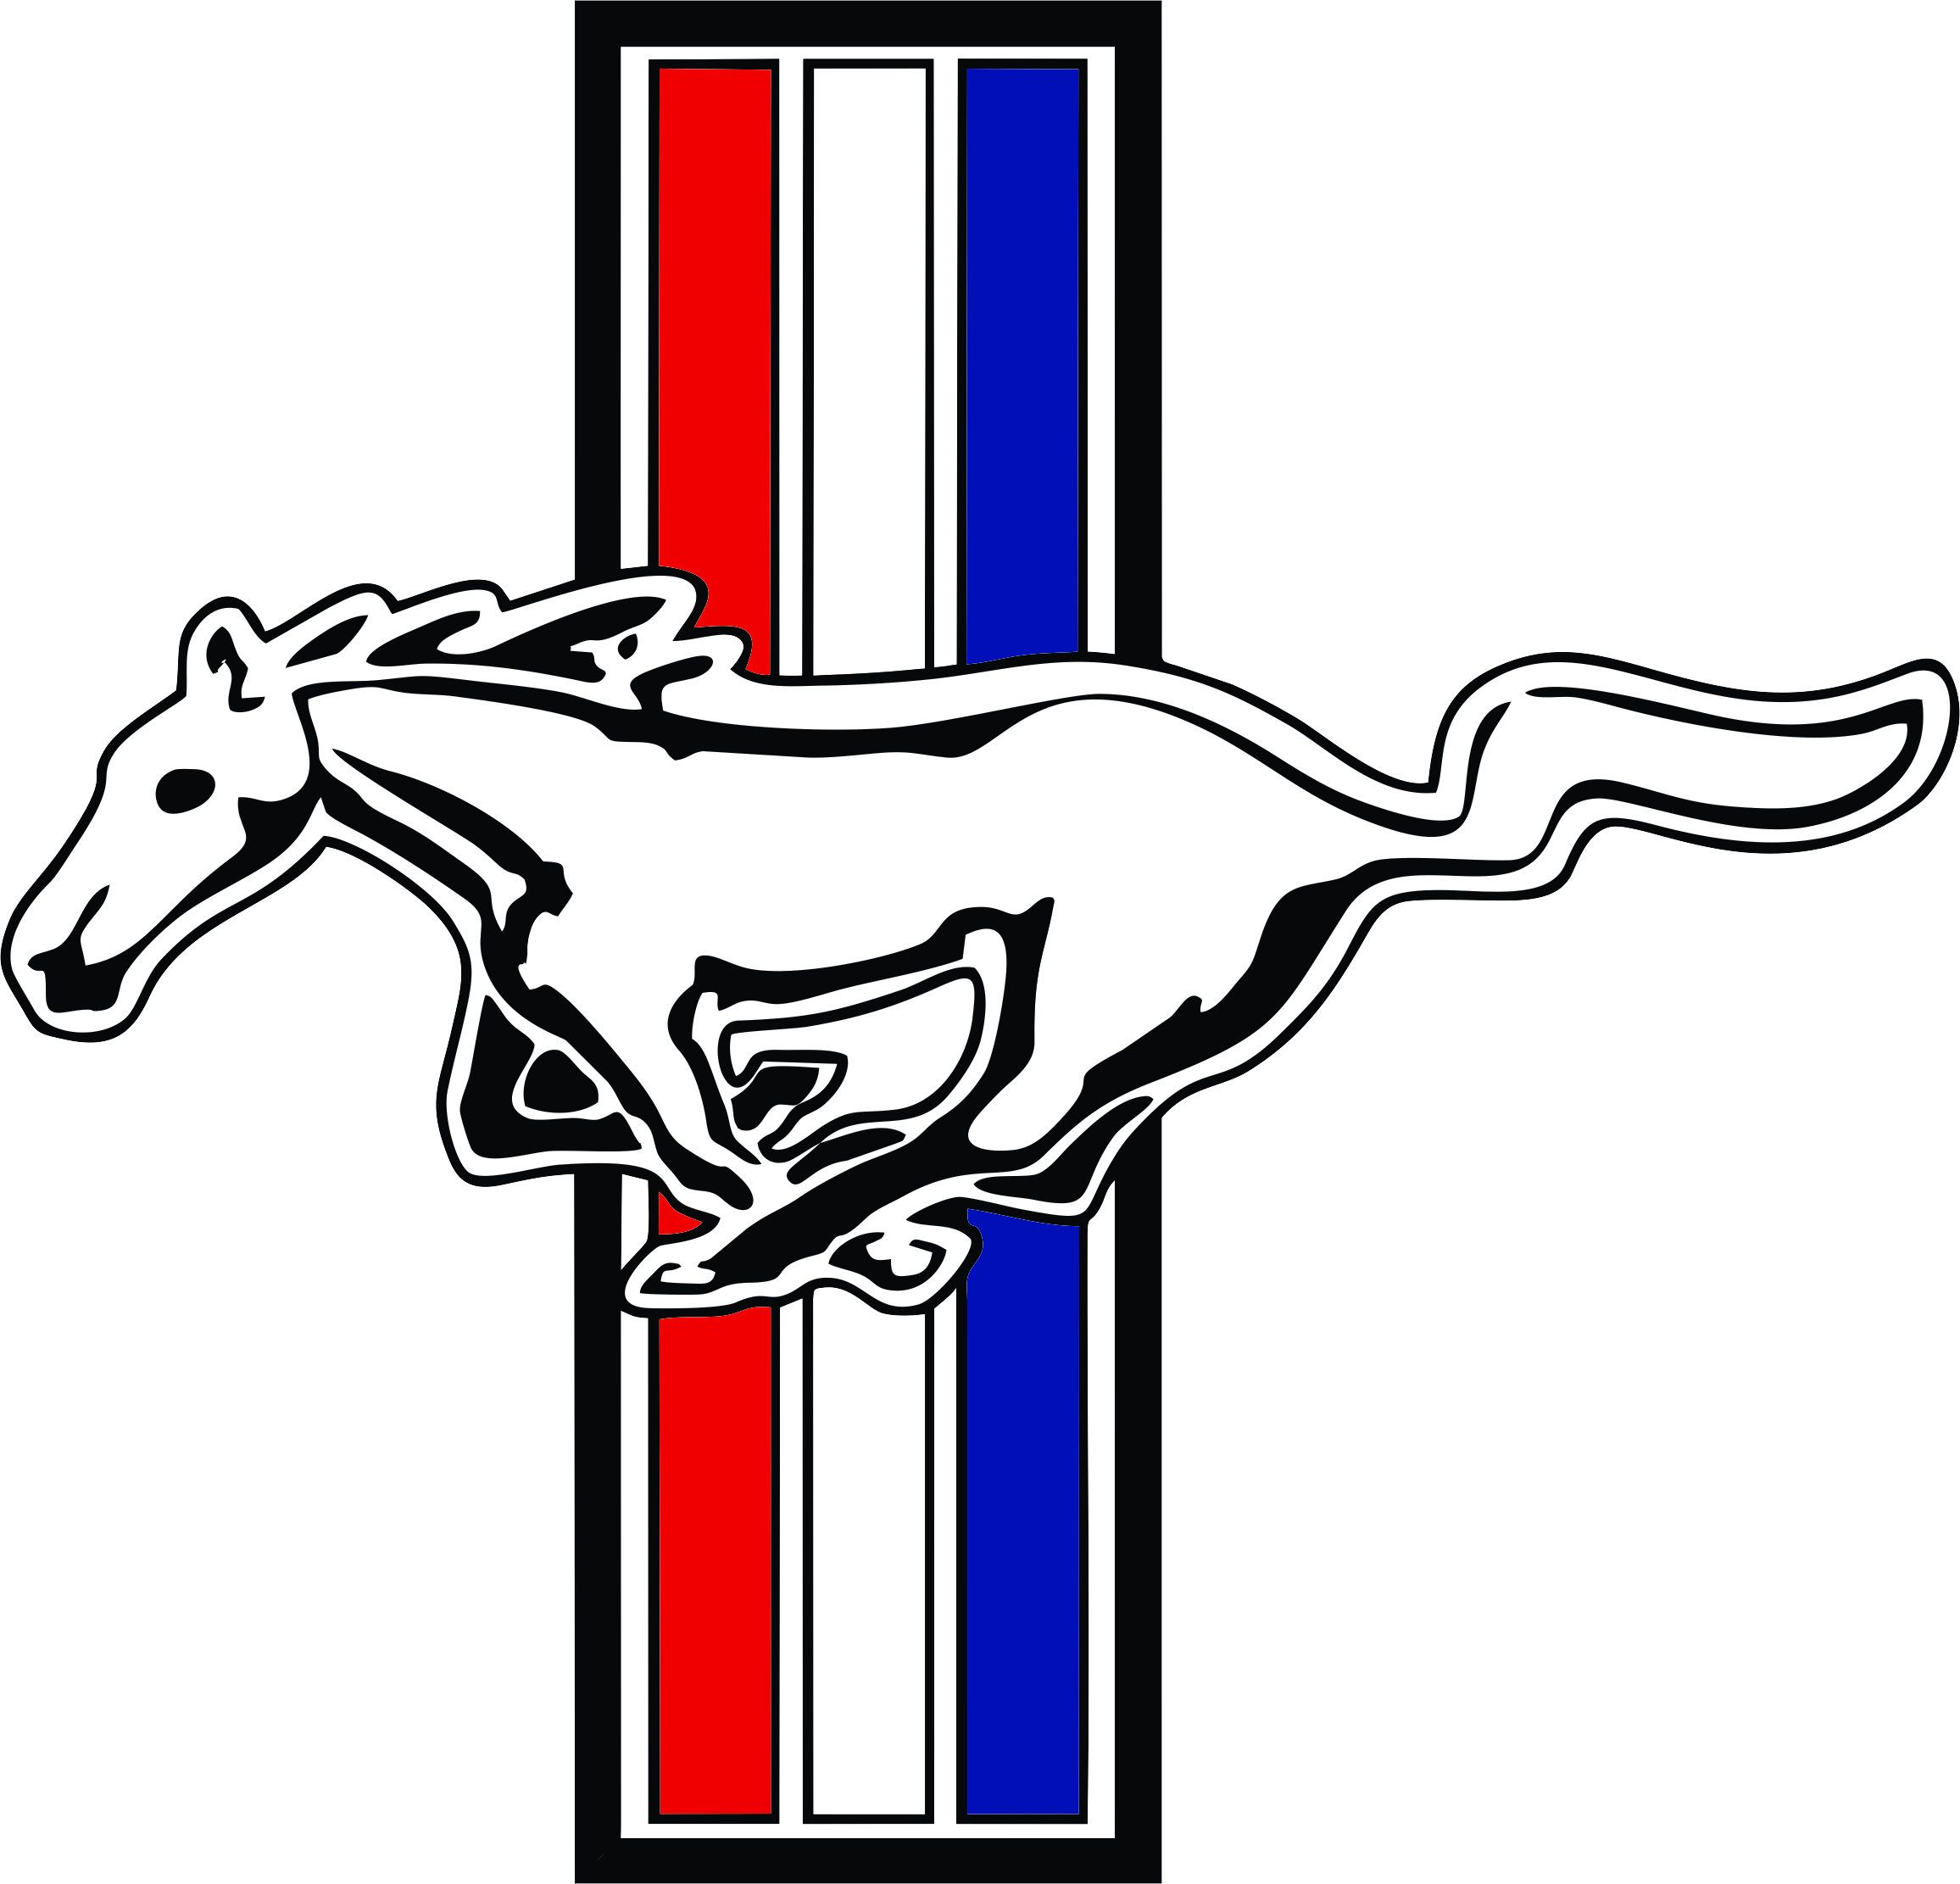 Mustang Color Svg Jpeg By Svgcollage On Etsy Mustang Logo Ford Mustang Logo Ford Mustang